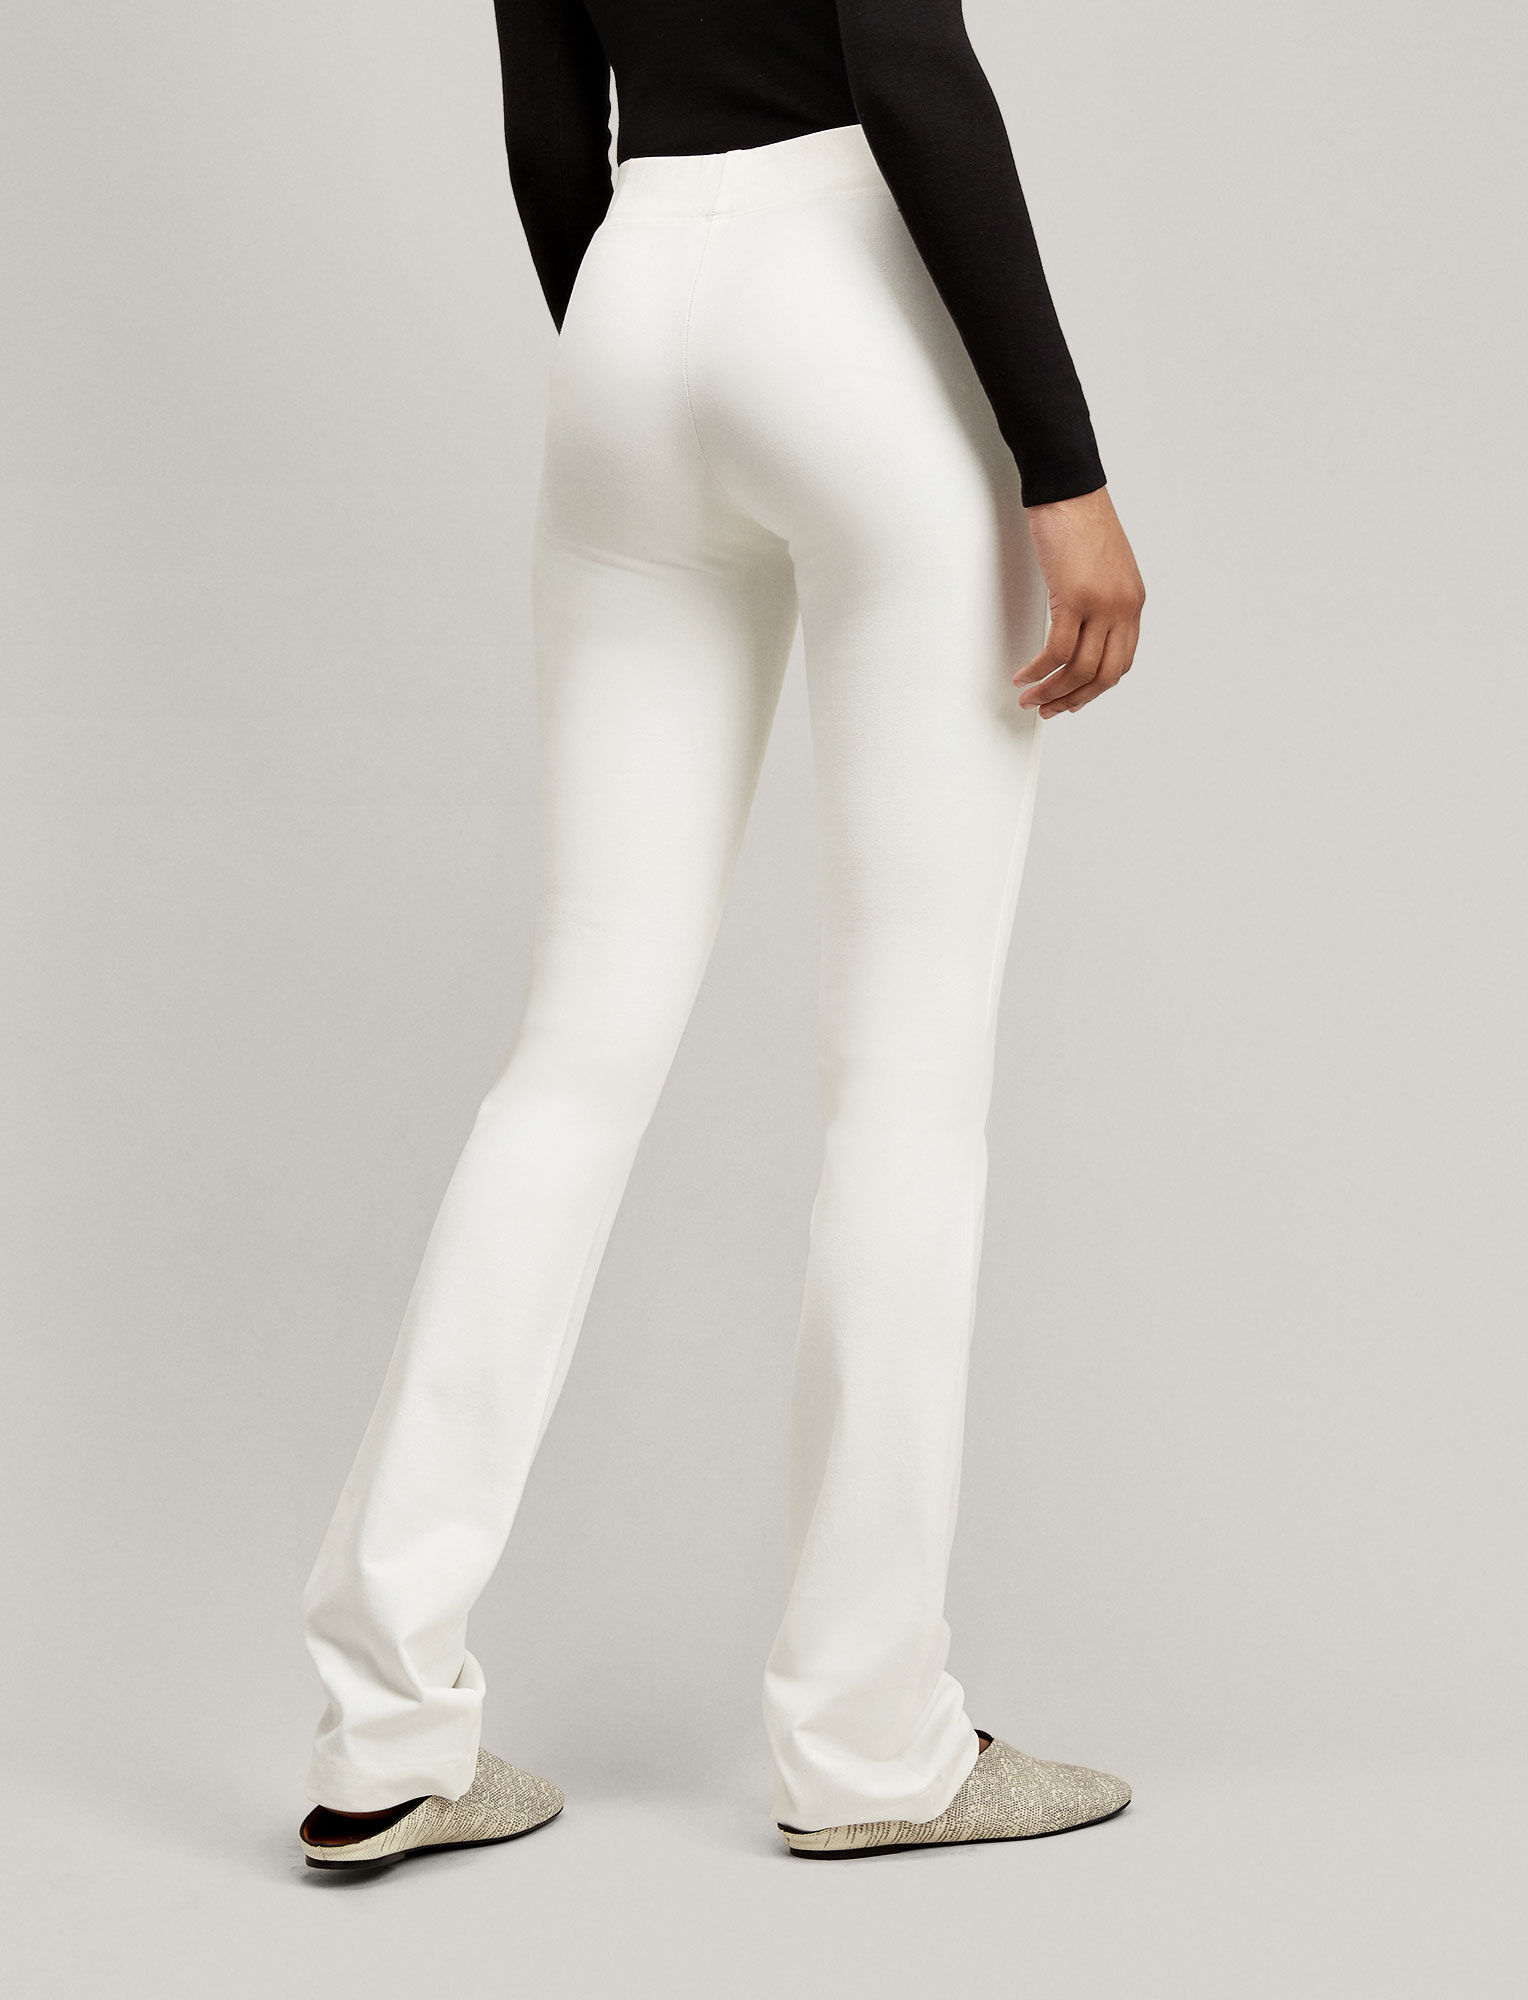 Joseph, Pantalon Lex en gabardine stretch, in OFF WHITE